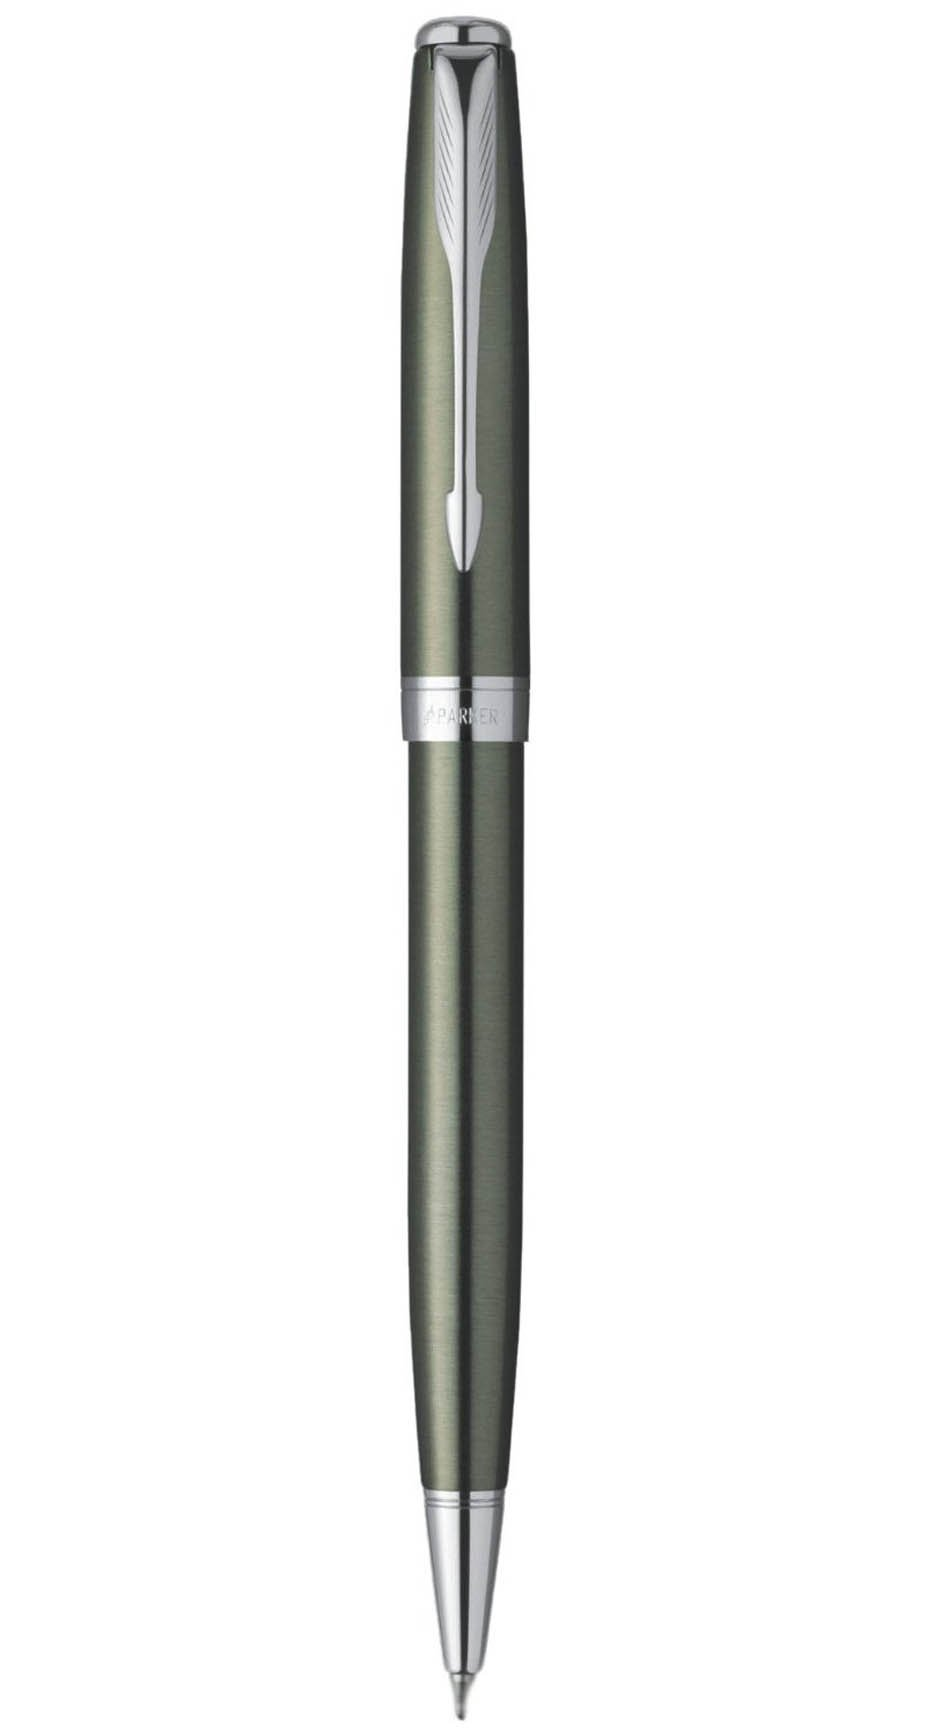 Parker Sonnet Verdigris Silver Trim 0.5 mm Mechanical Pencil